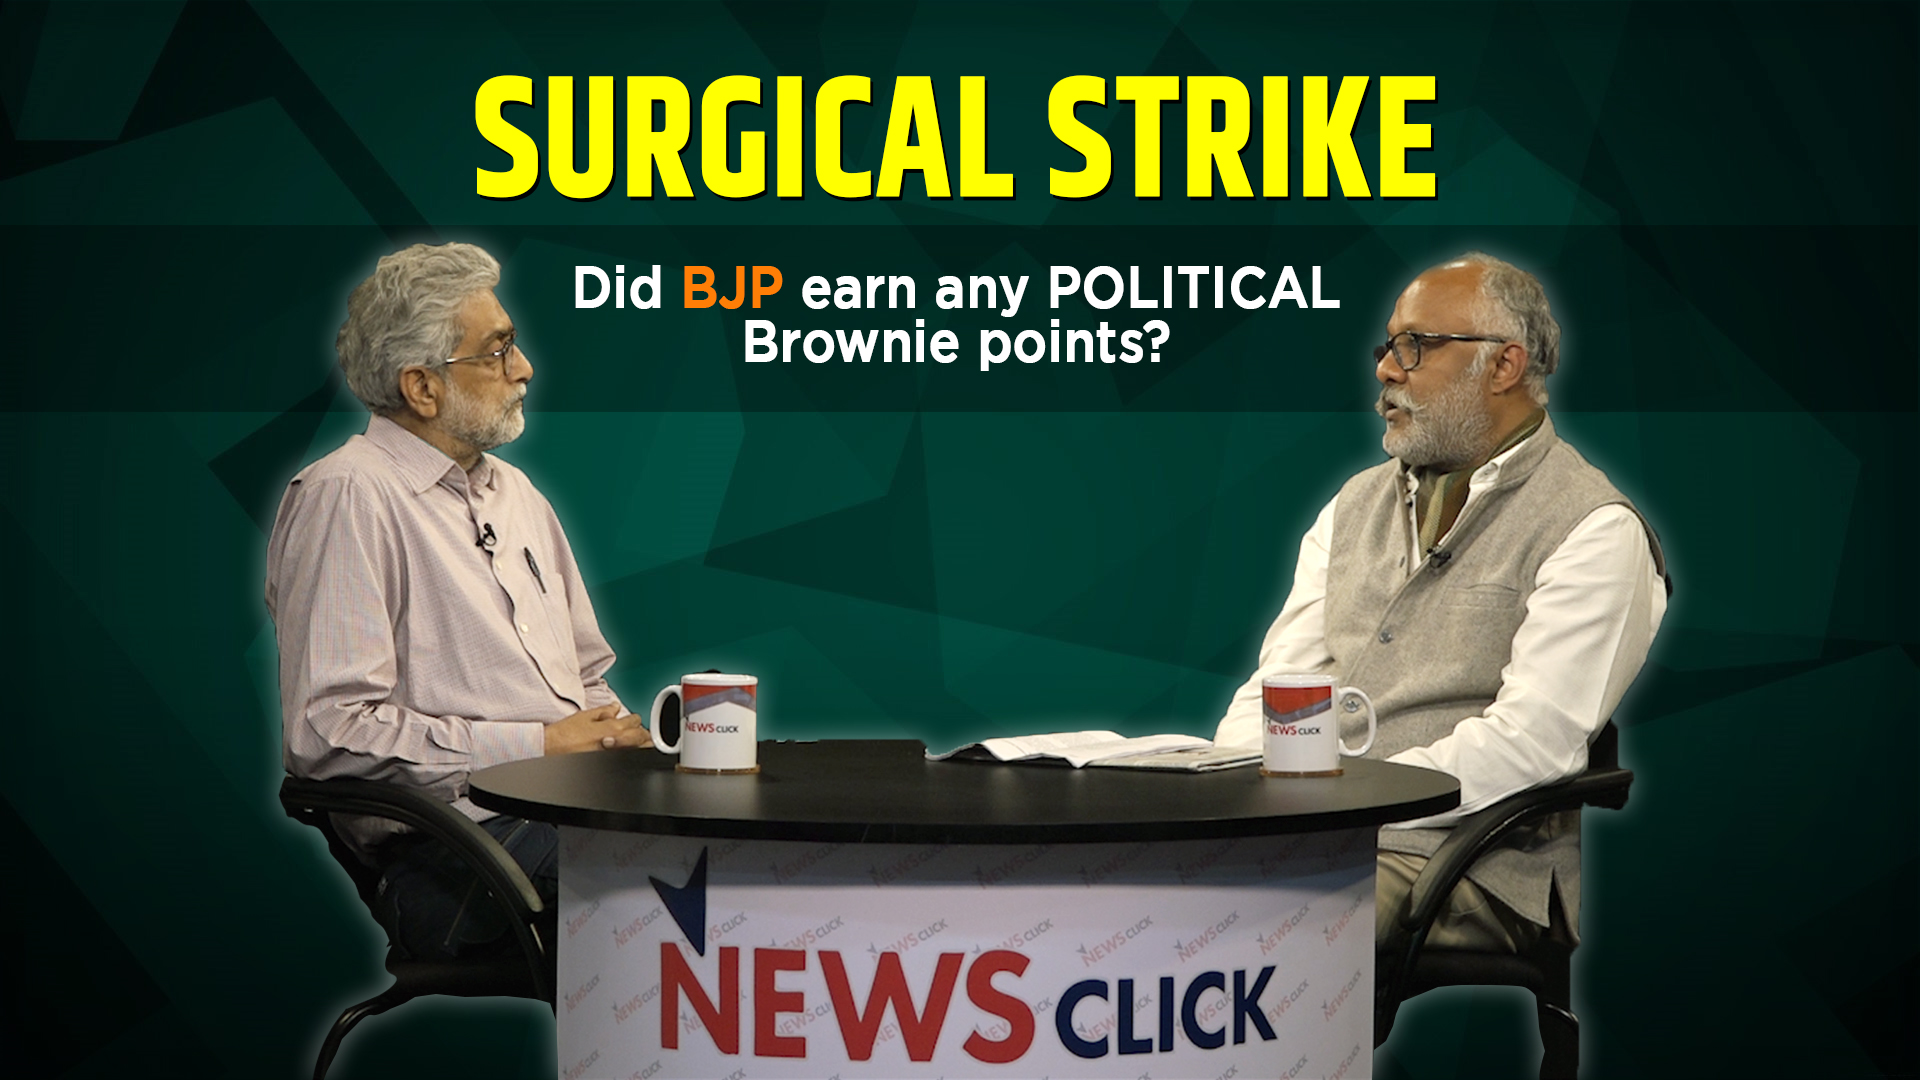 The Obvious Politicisation of Overhyped Surgical Strike